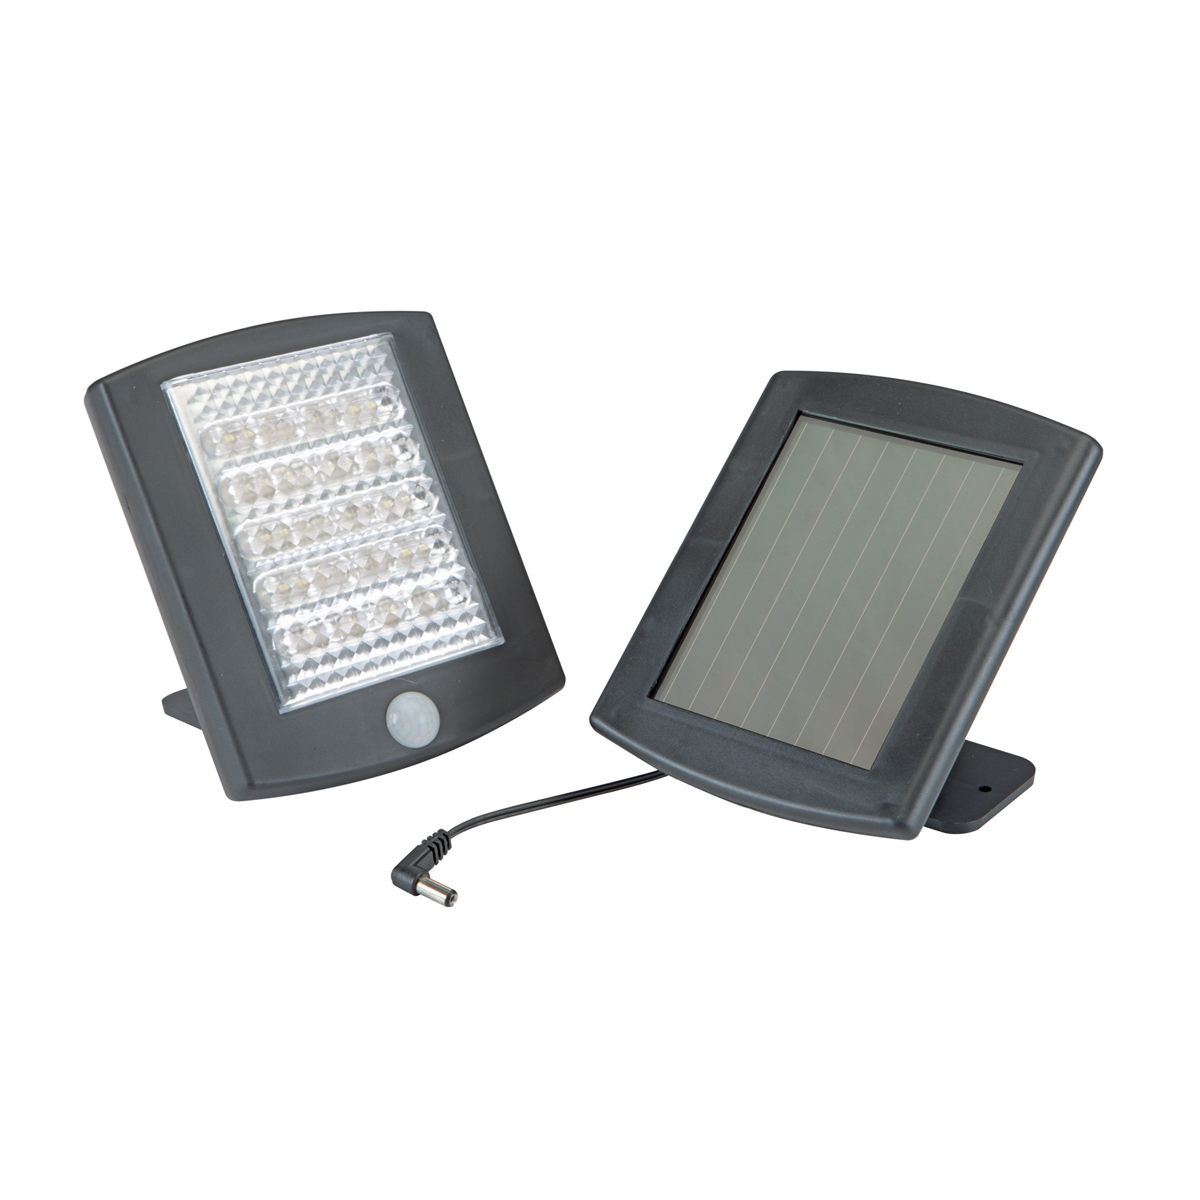 Save On This 36 LED Security Light